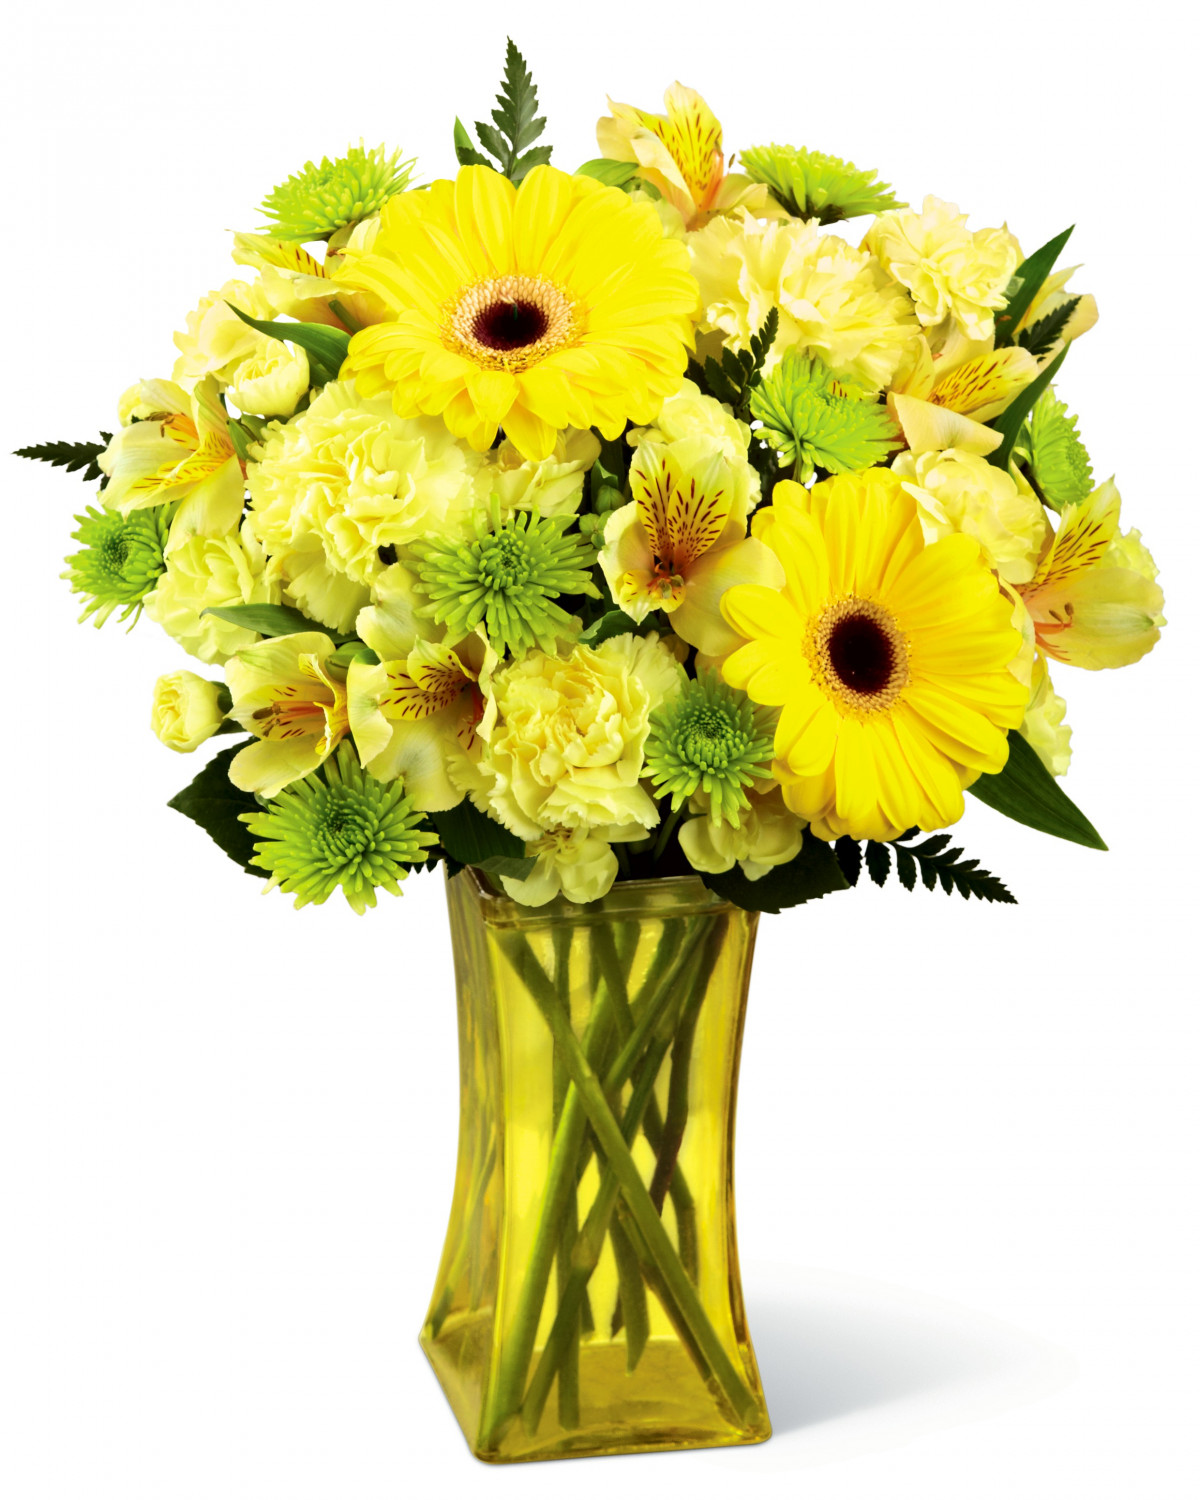 Discount Flowers Sale Hand Tied Bouquets Today Flower